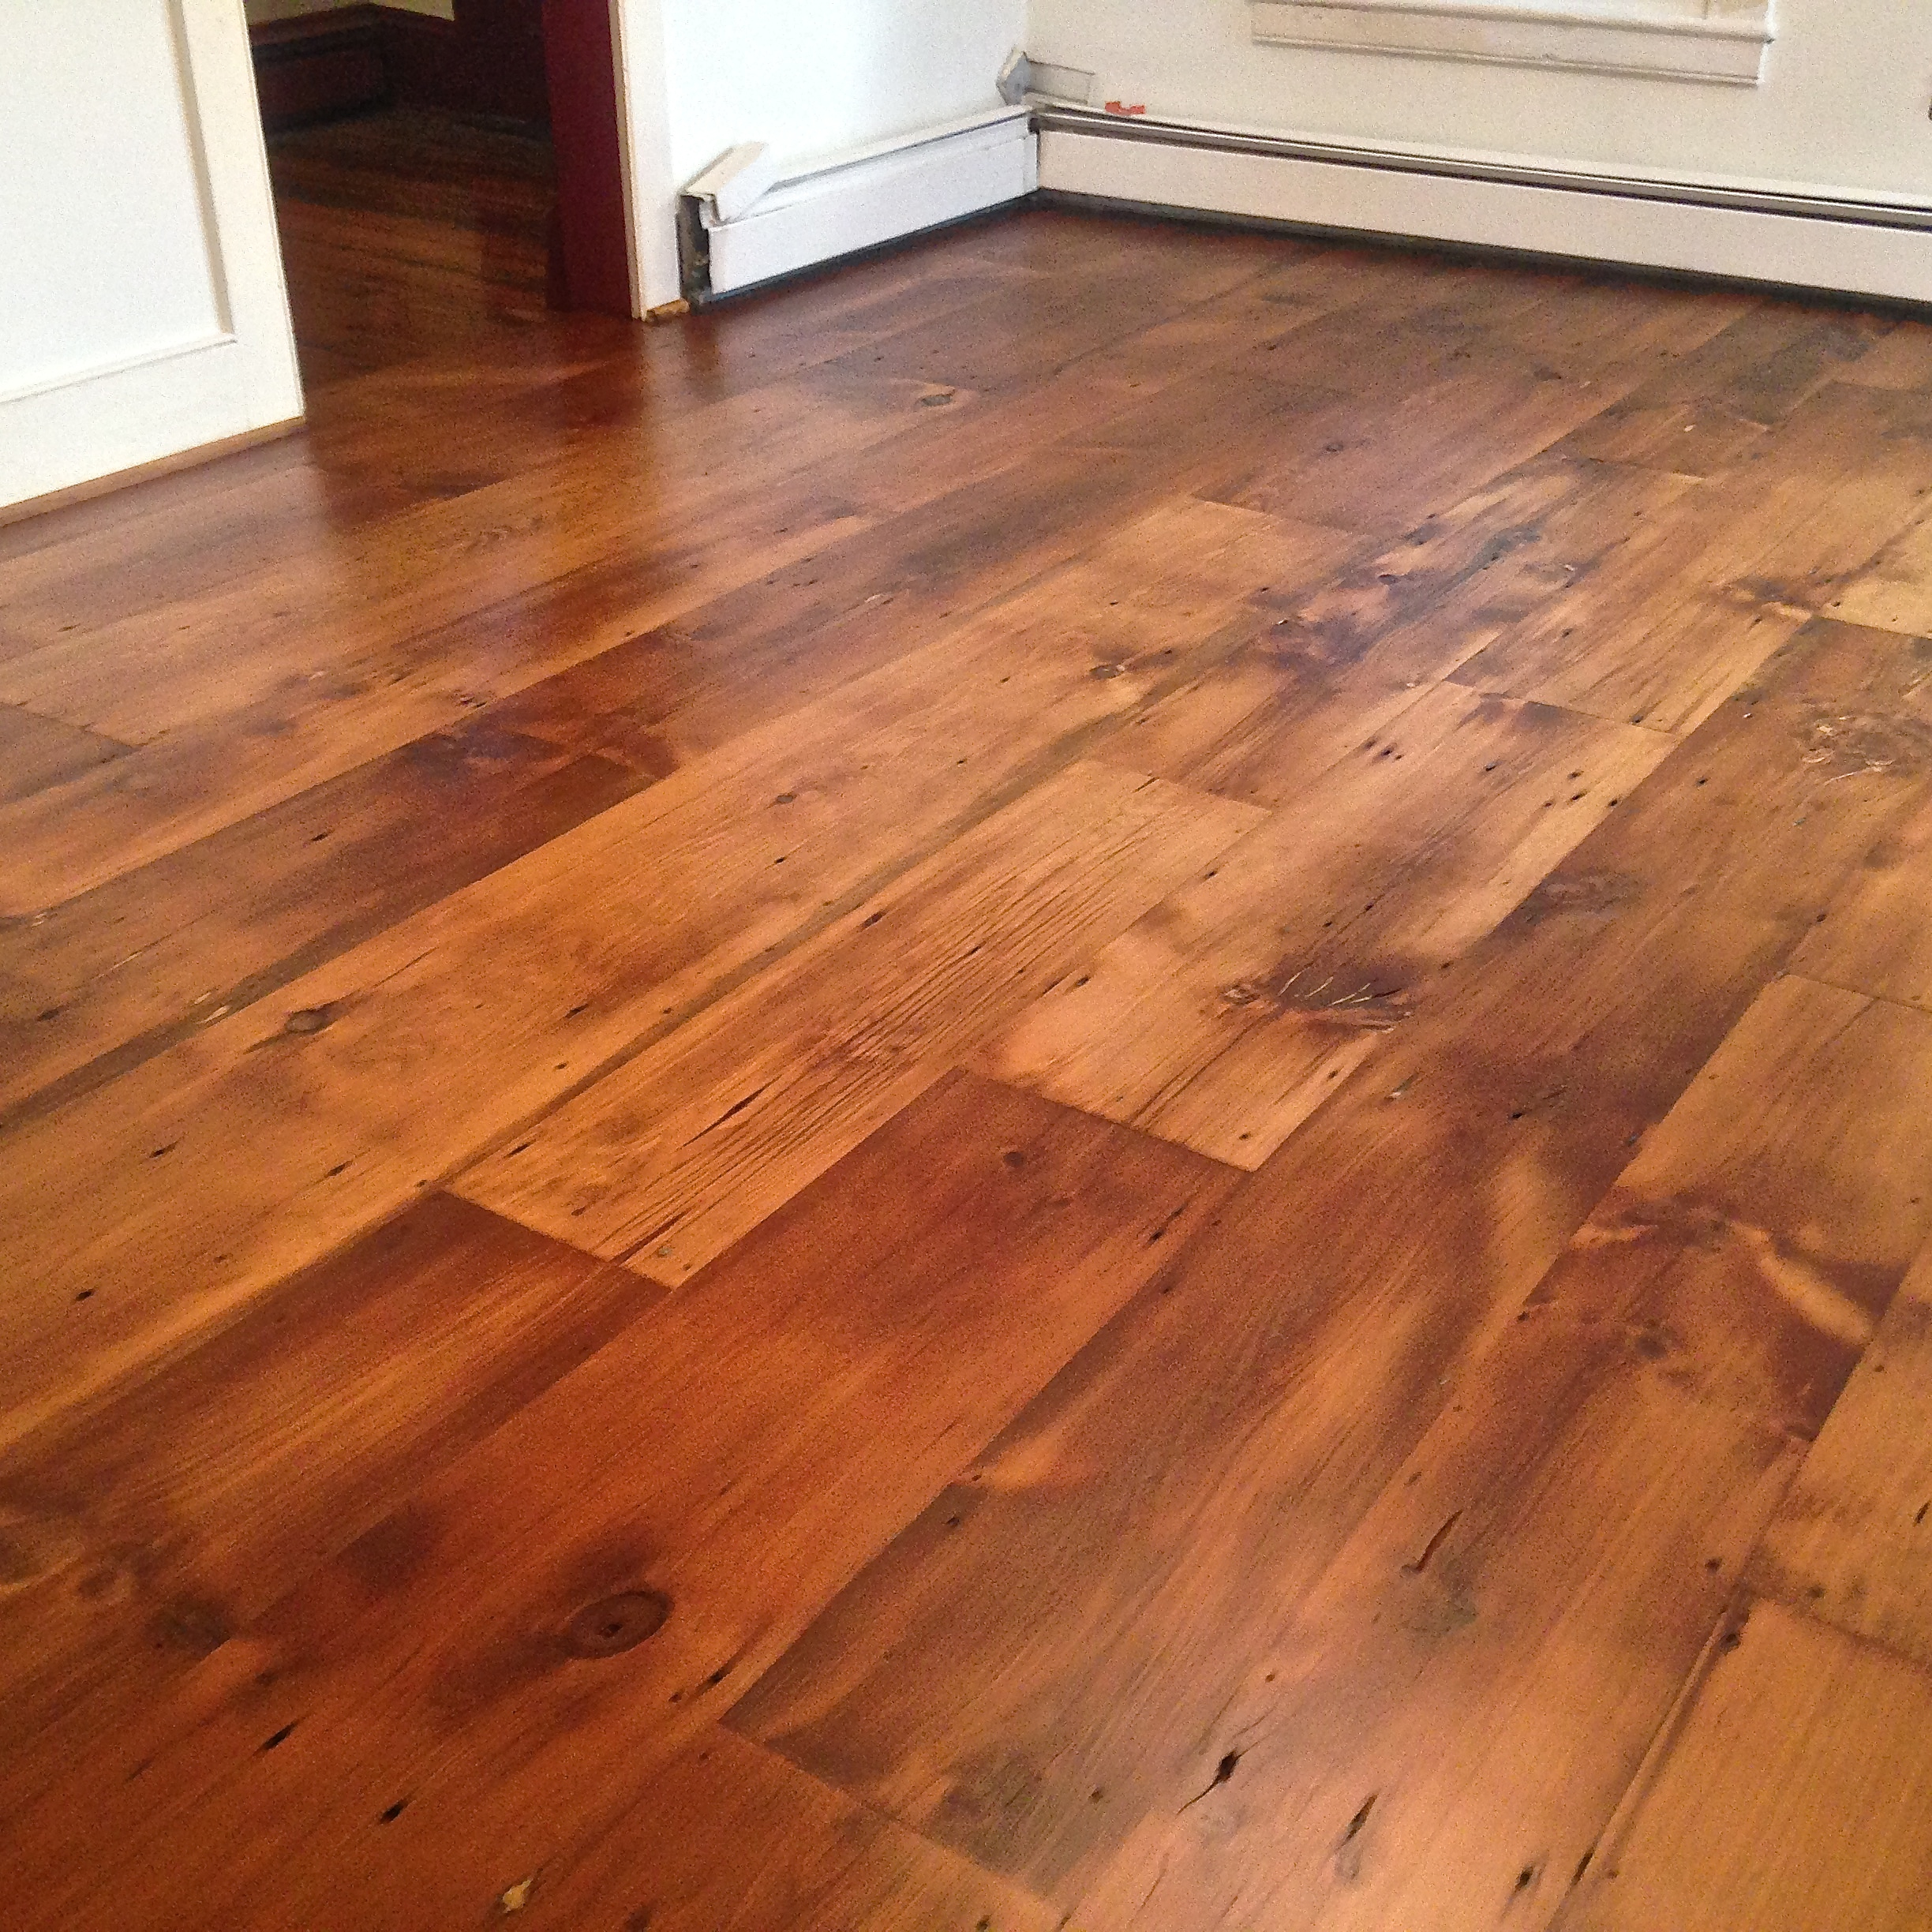 Wide plank reclaimed flooring authentic antique lumber for Recycled hardwood floors